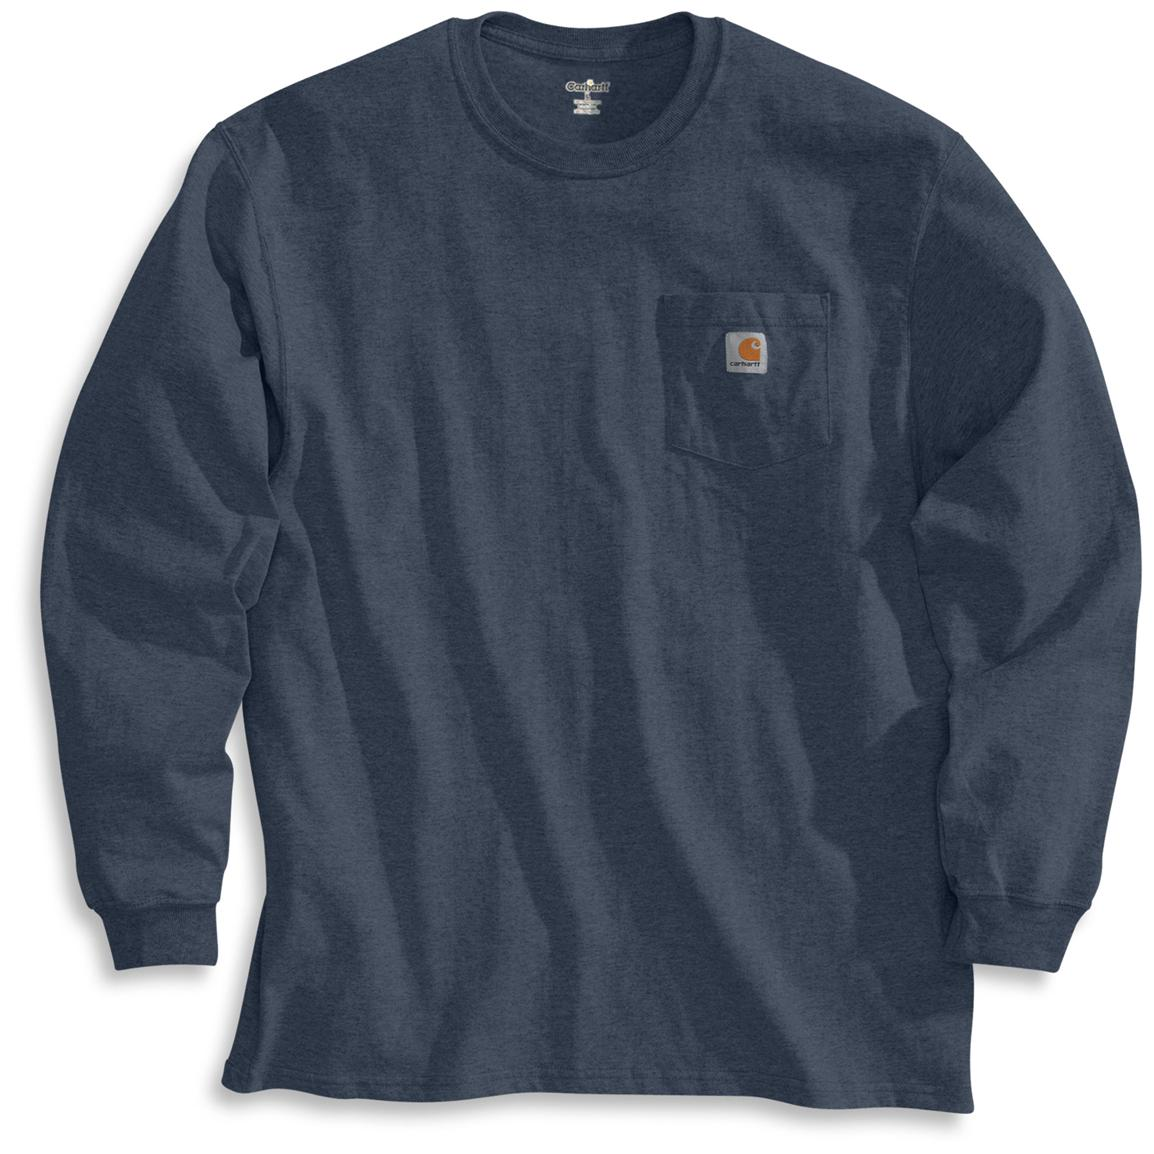 Men's Carhartt Workwear Long-Sleeve Pocket T-Shirt, Bluestone